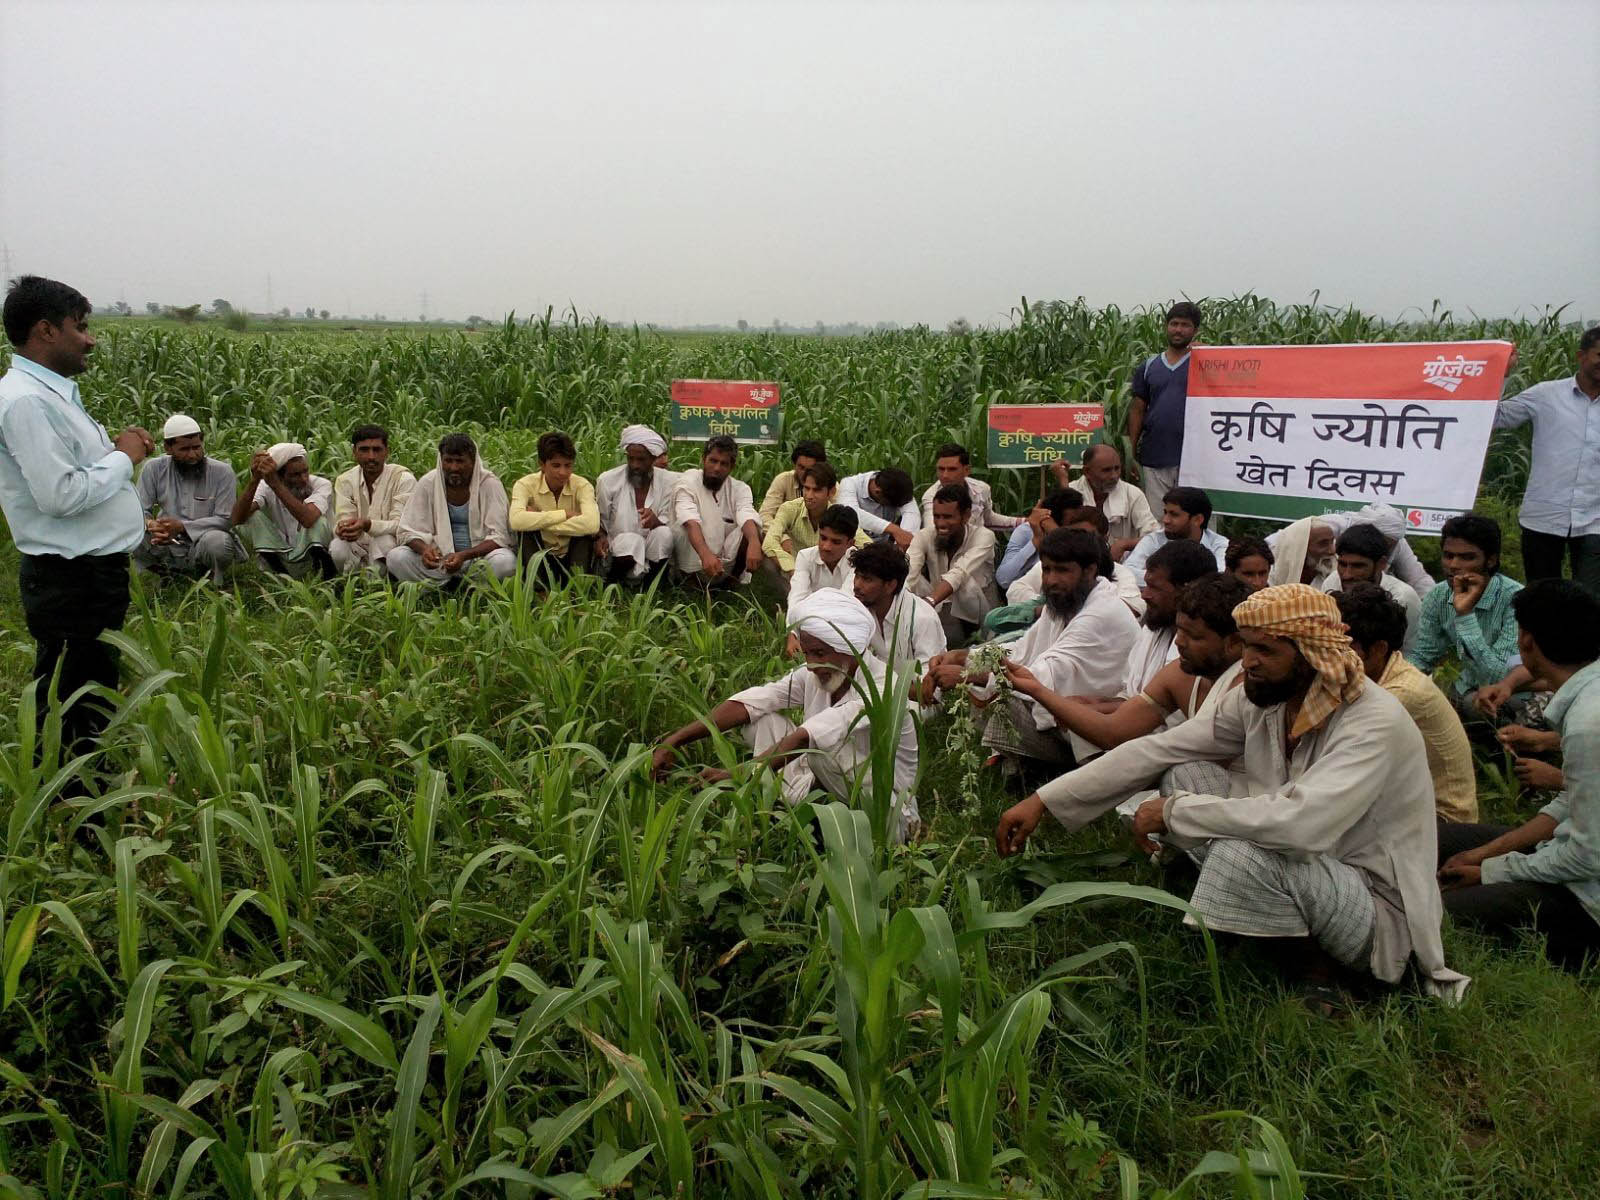 A group of farmers sit in a green field among signs.